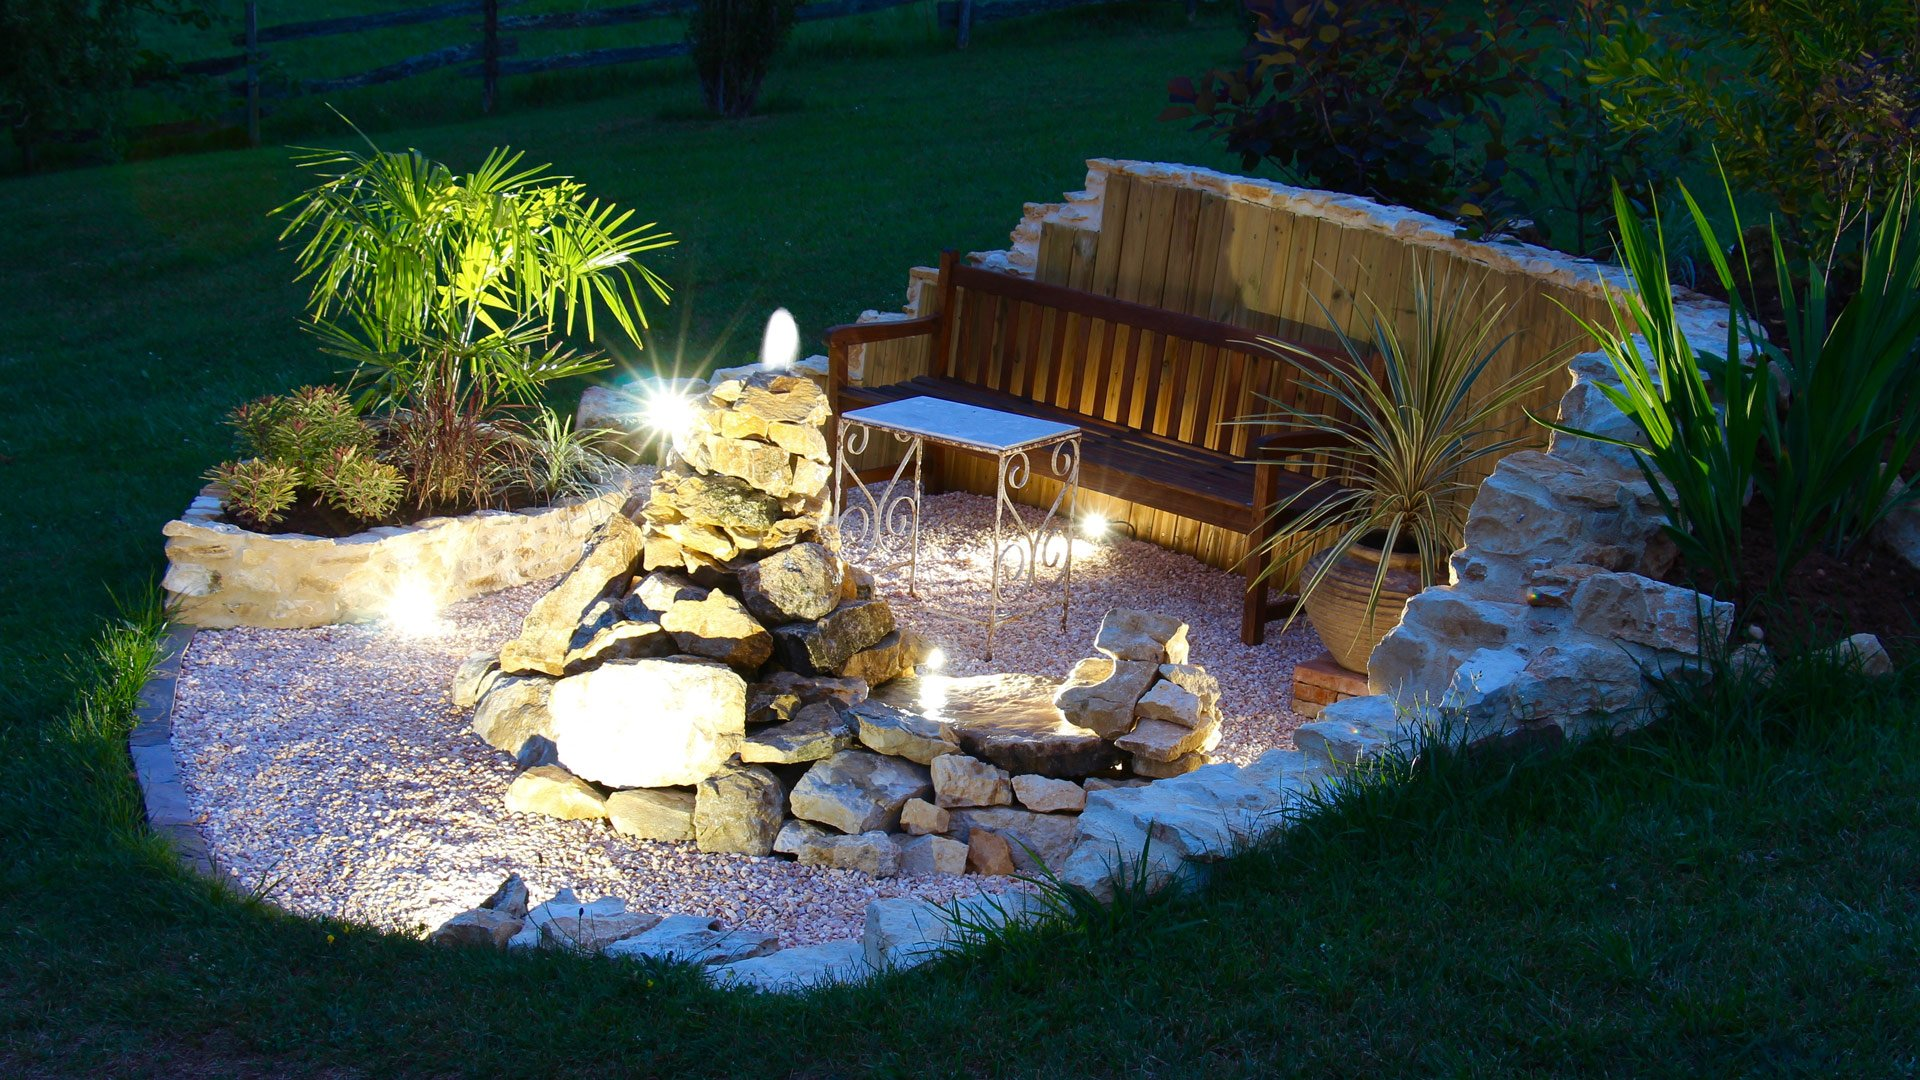 Nighttime water feature lmds